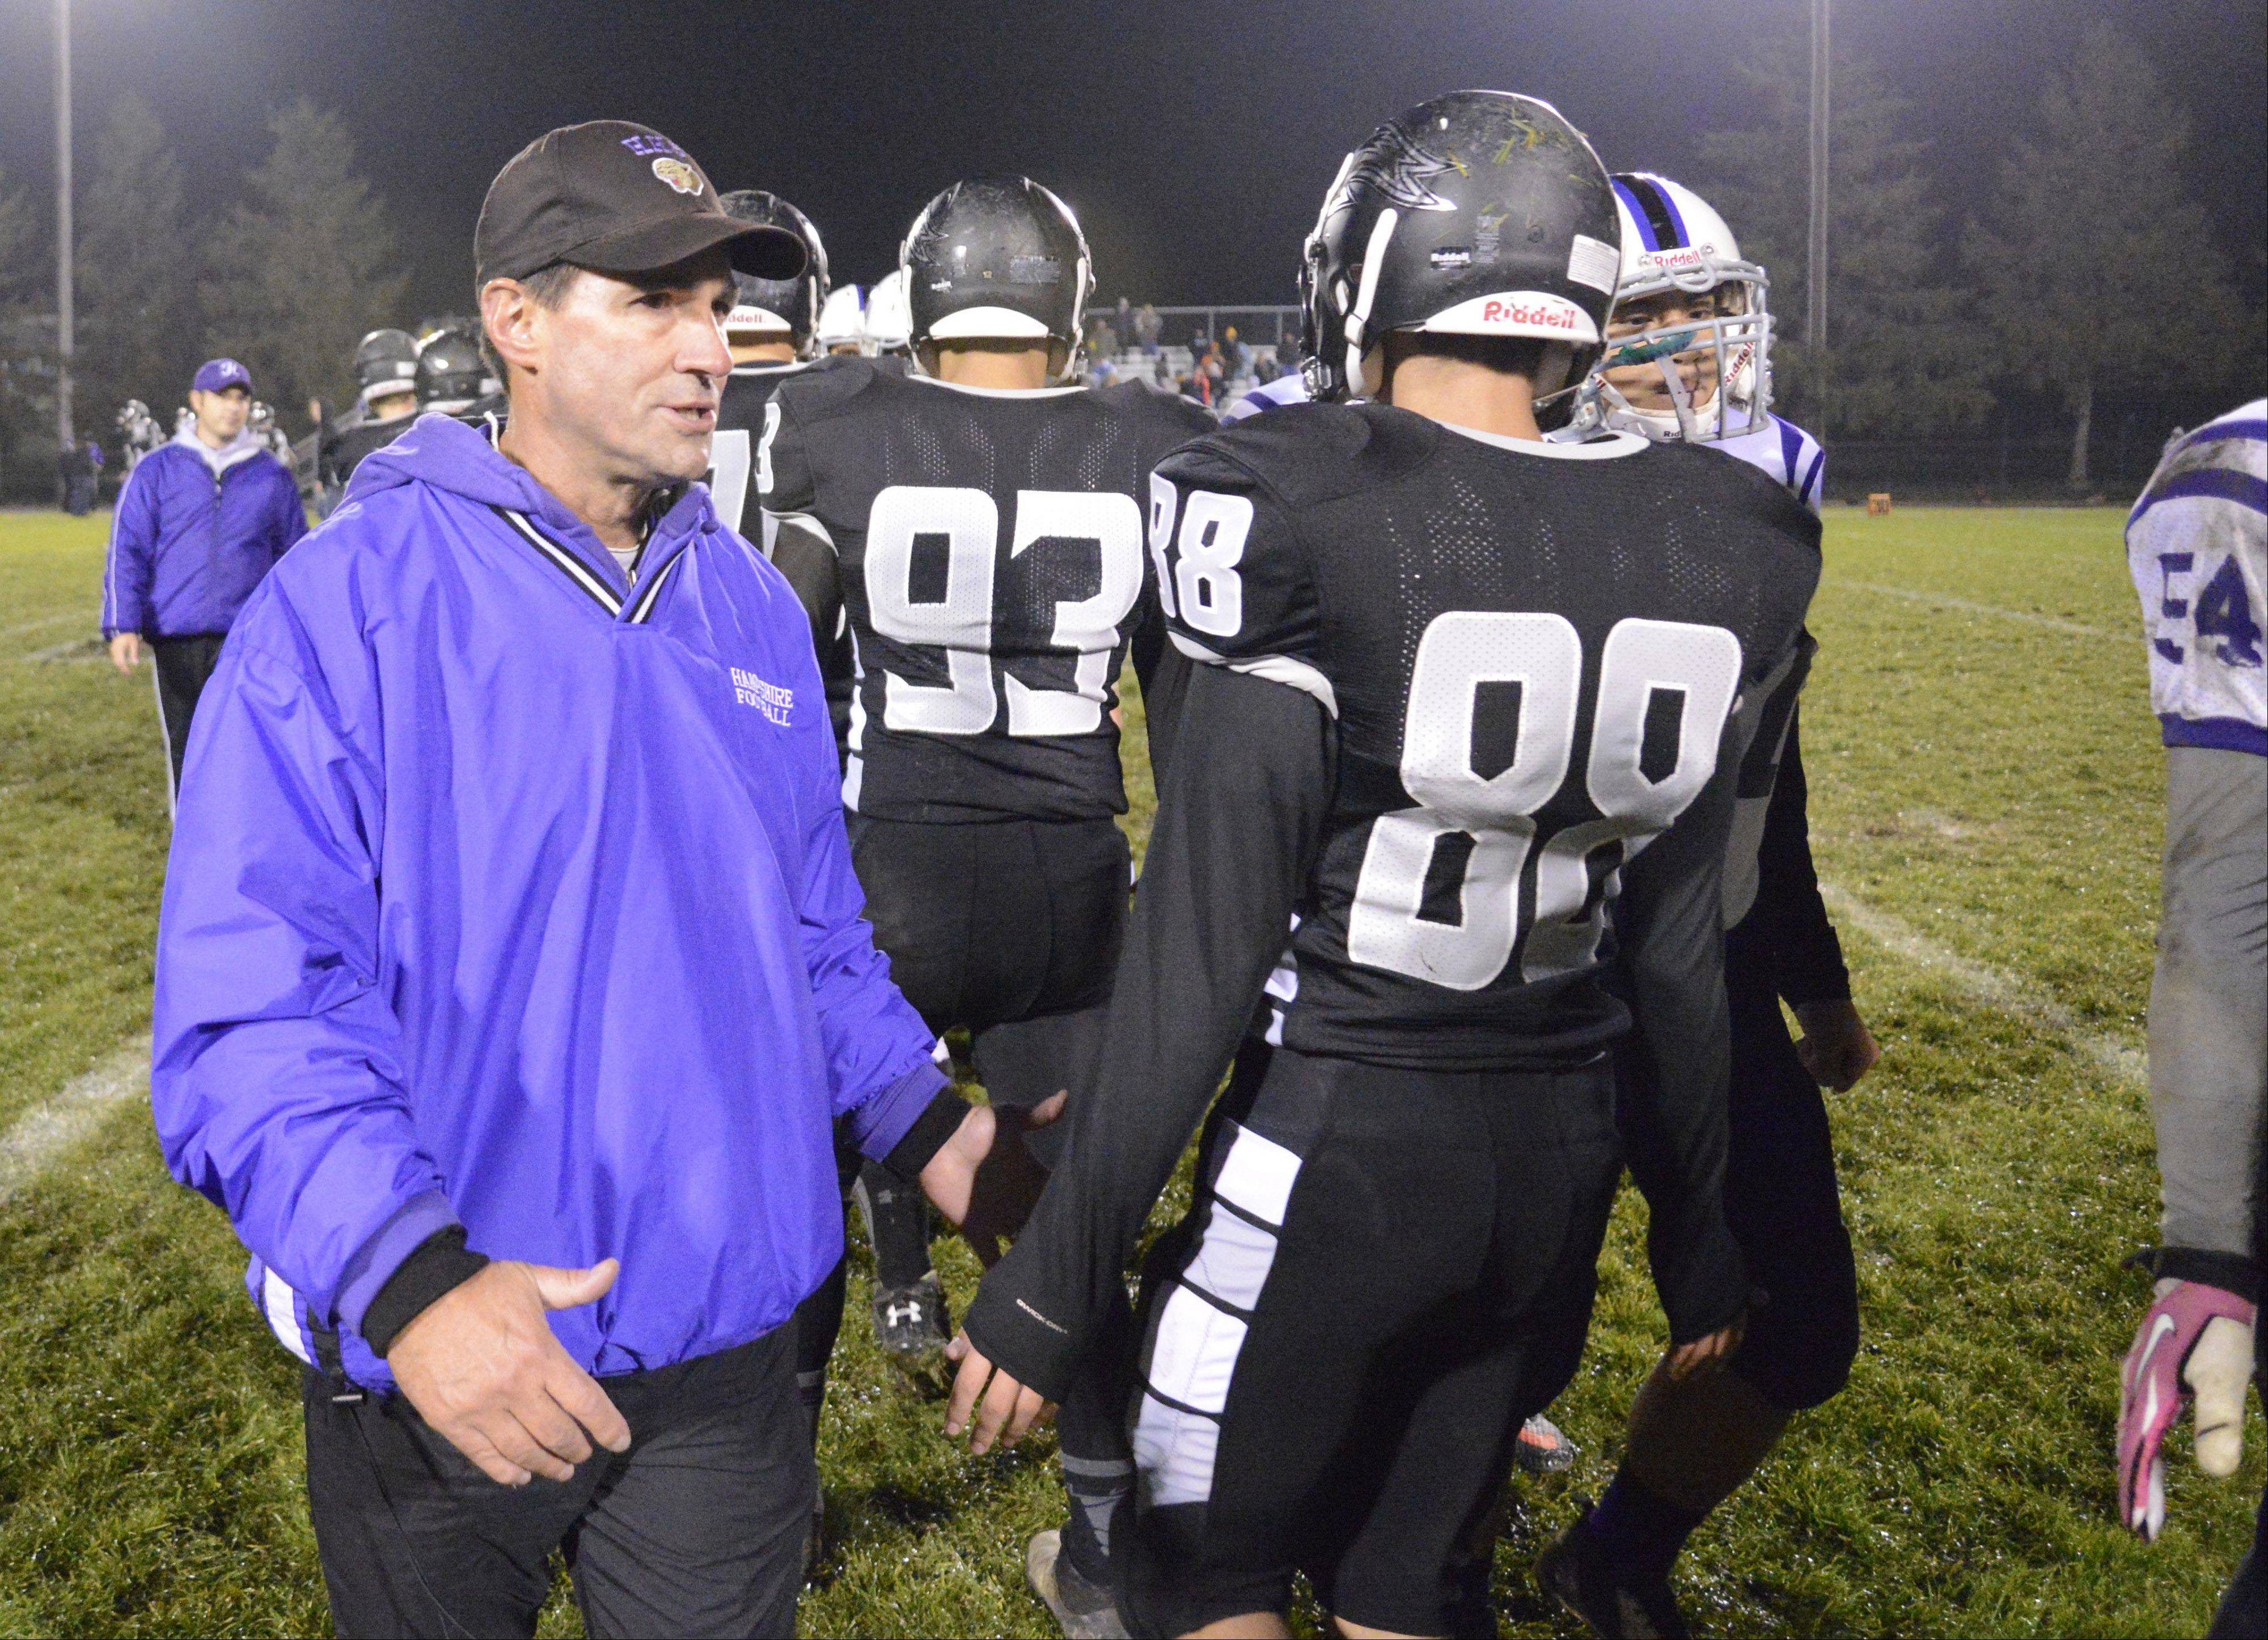 Hampshire head coach Dan Cavanaugh congratulates Kaneland players.